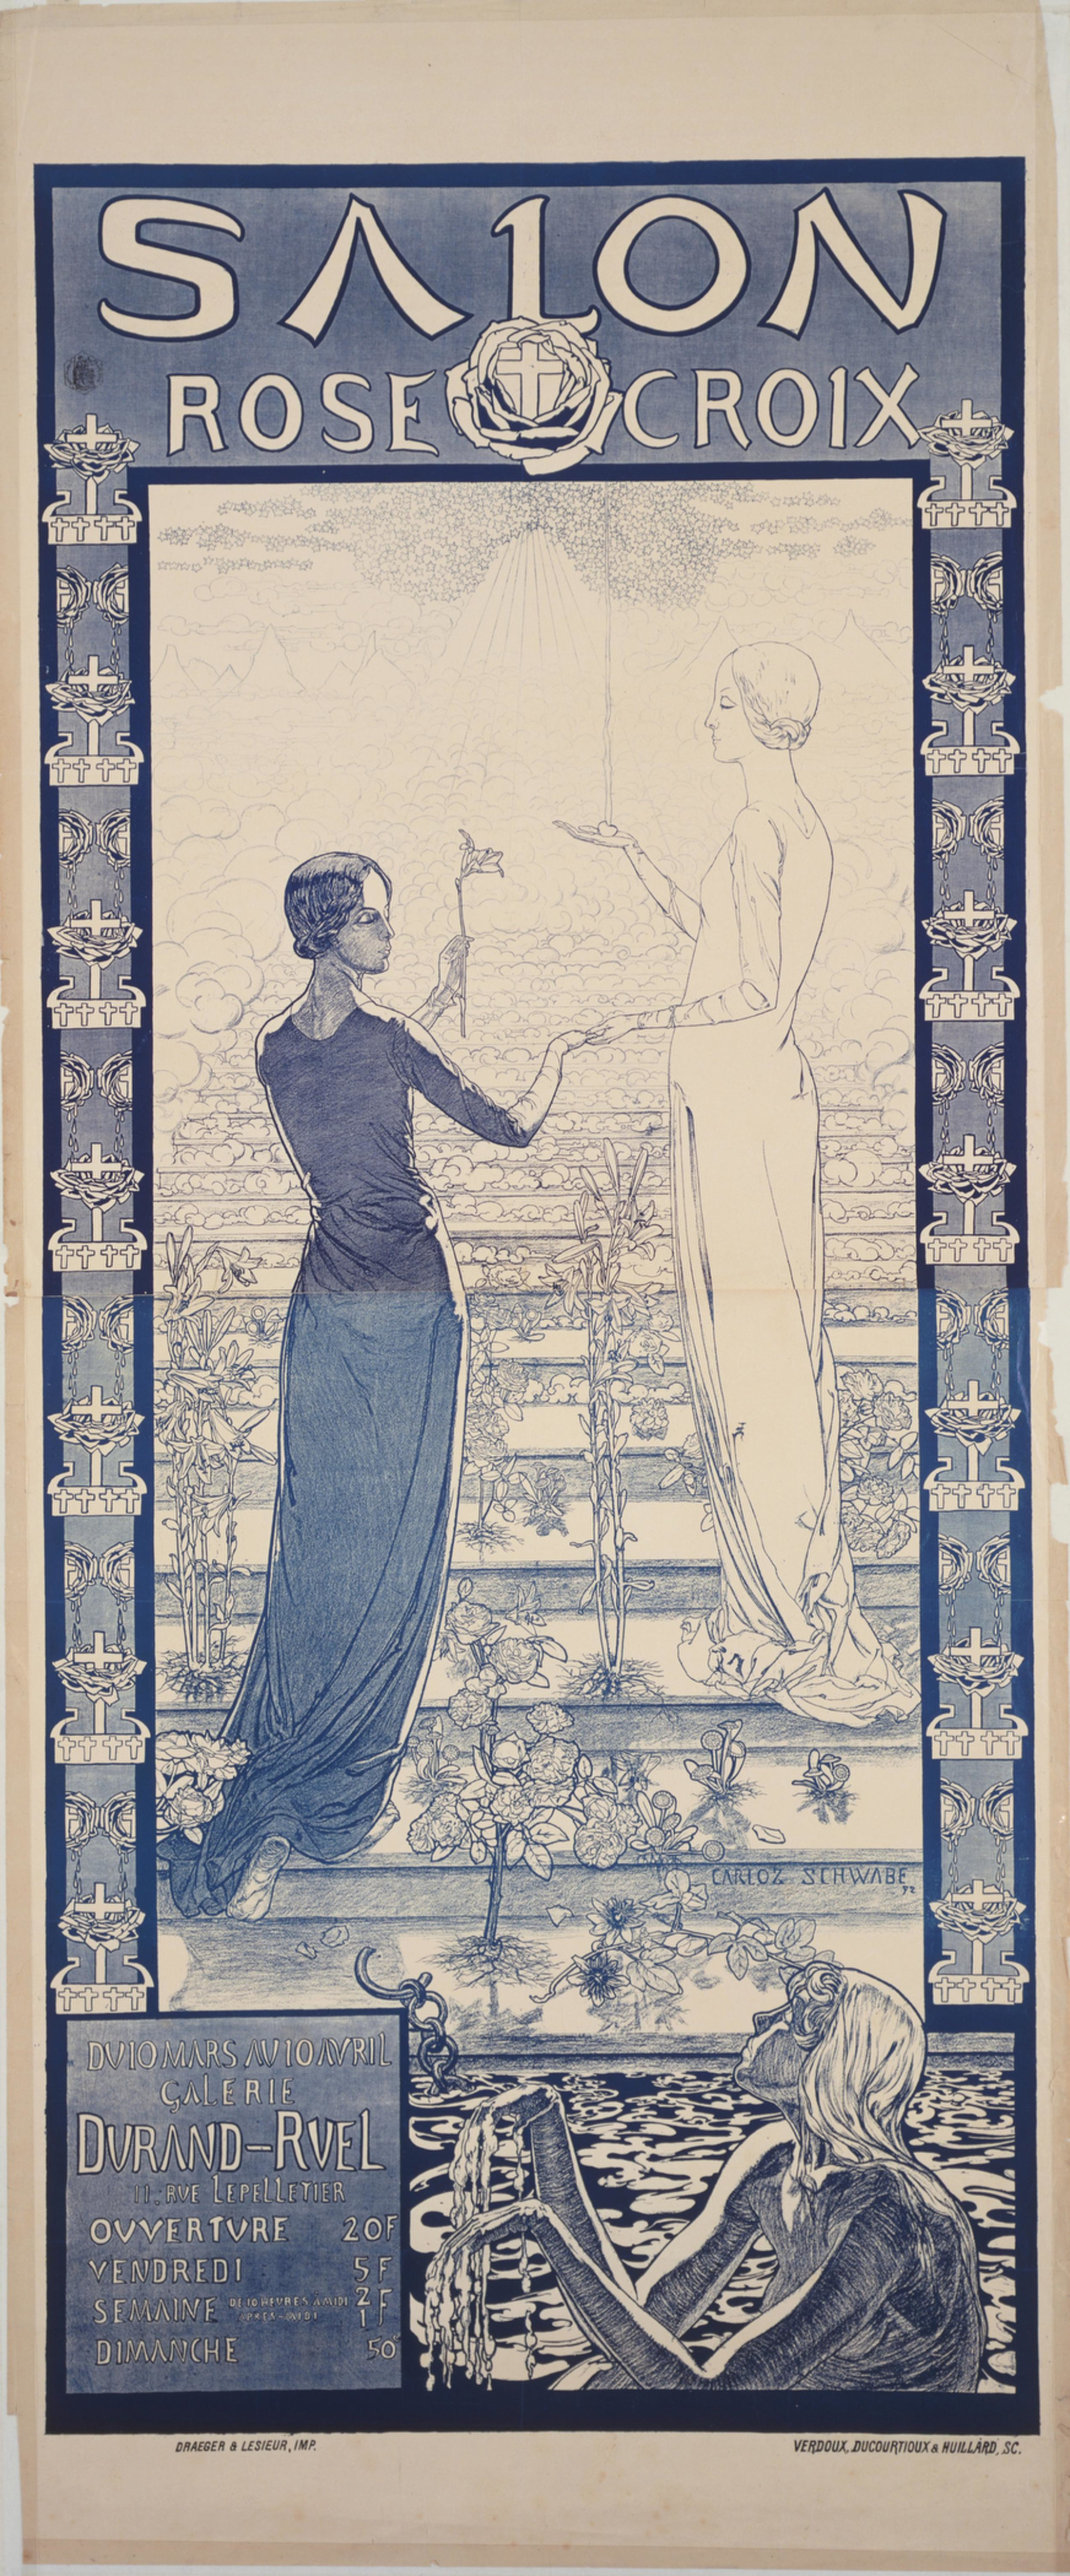 Carlos Schwabe's poster for the first Salon de la Rose+Croix (1892) PHOTO: THE MUSEUM OF MODERN ART/LICENSED BY SCALA/ART RESOURCE, NEW YORK